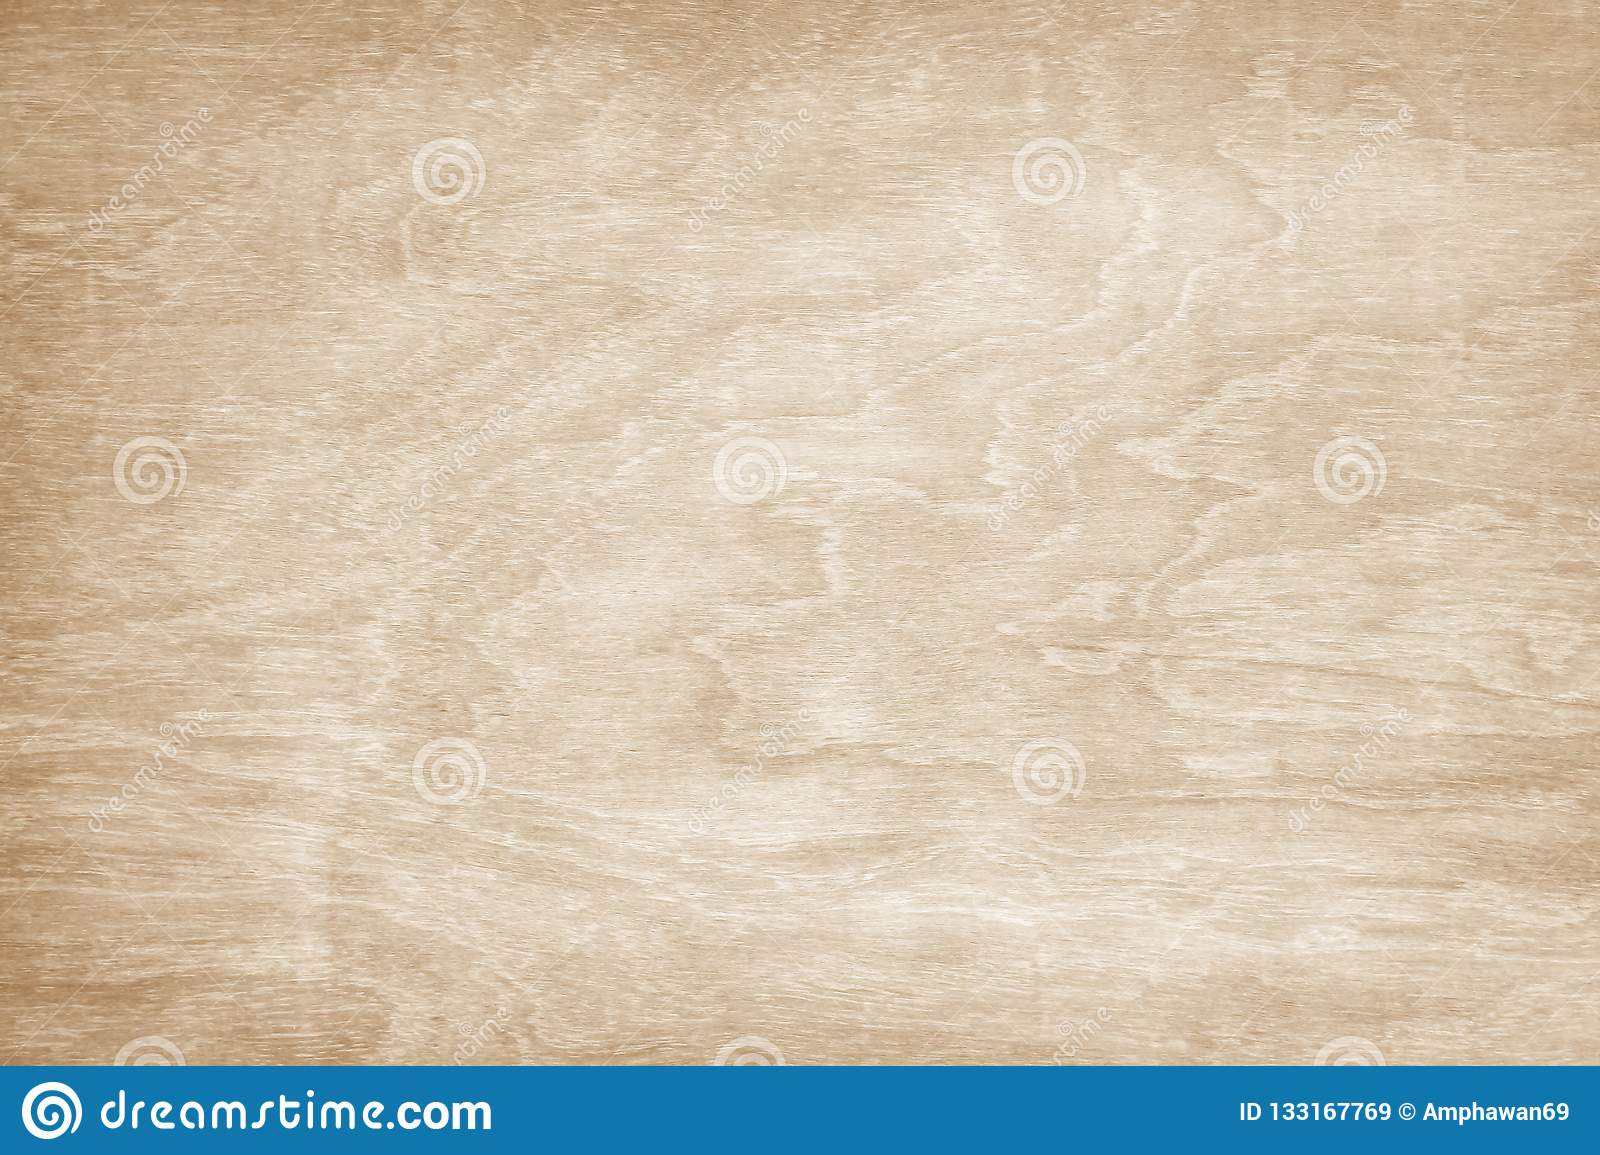 Wooden wall texture background, Light brown natural wave patterns abstract in horizontal